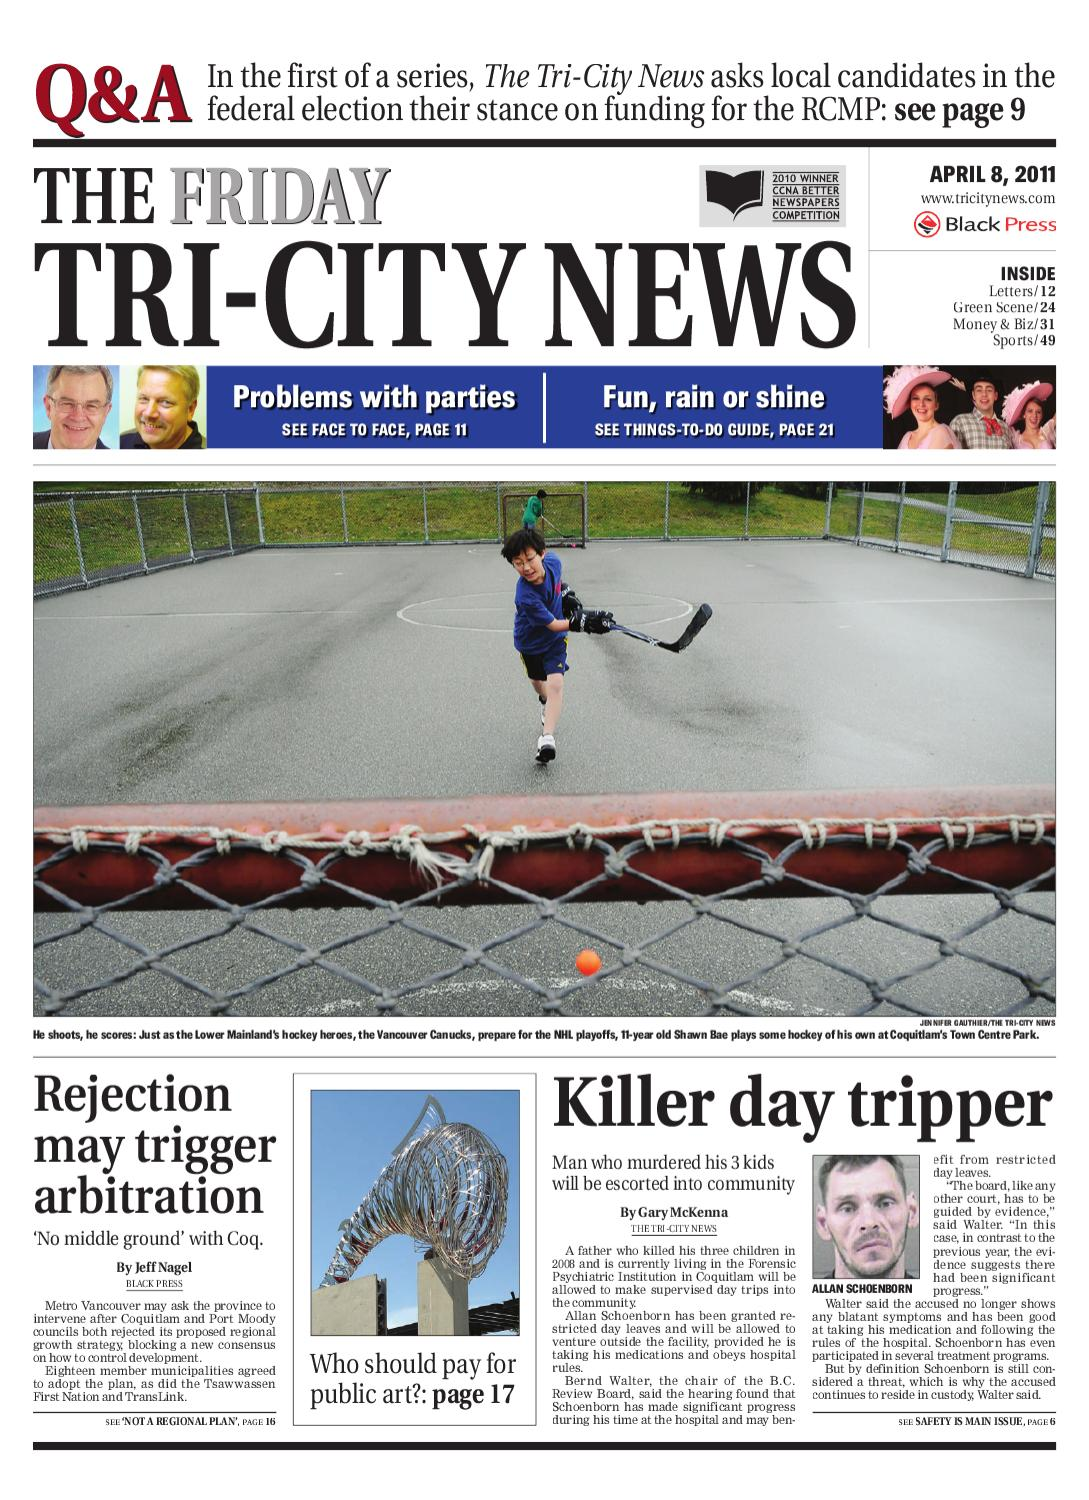 Friday, April 8, 2011 Tri-City News